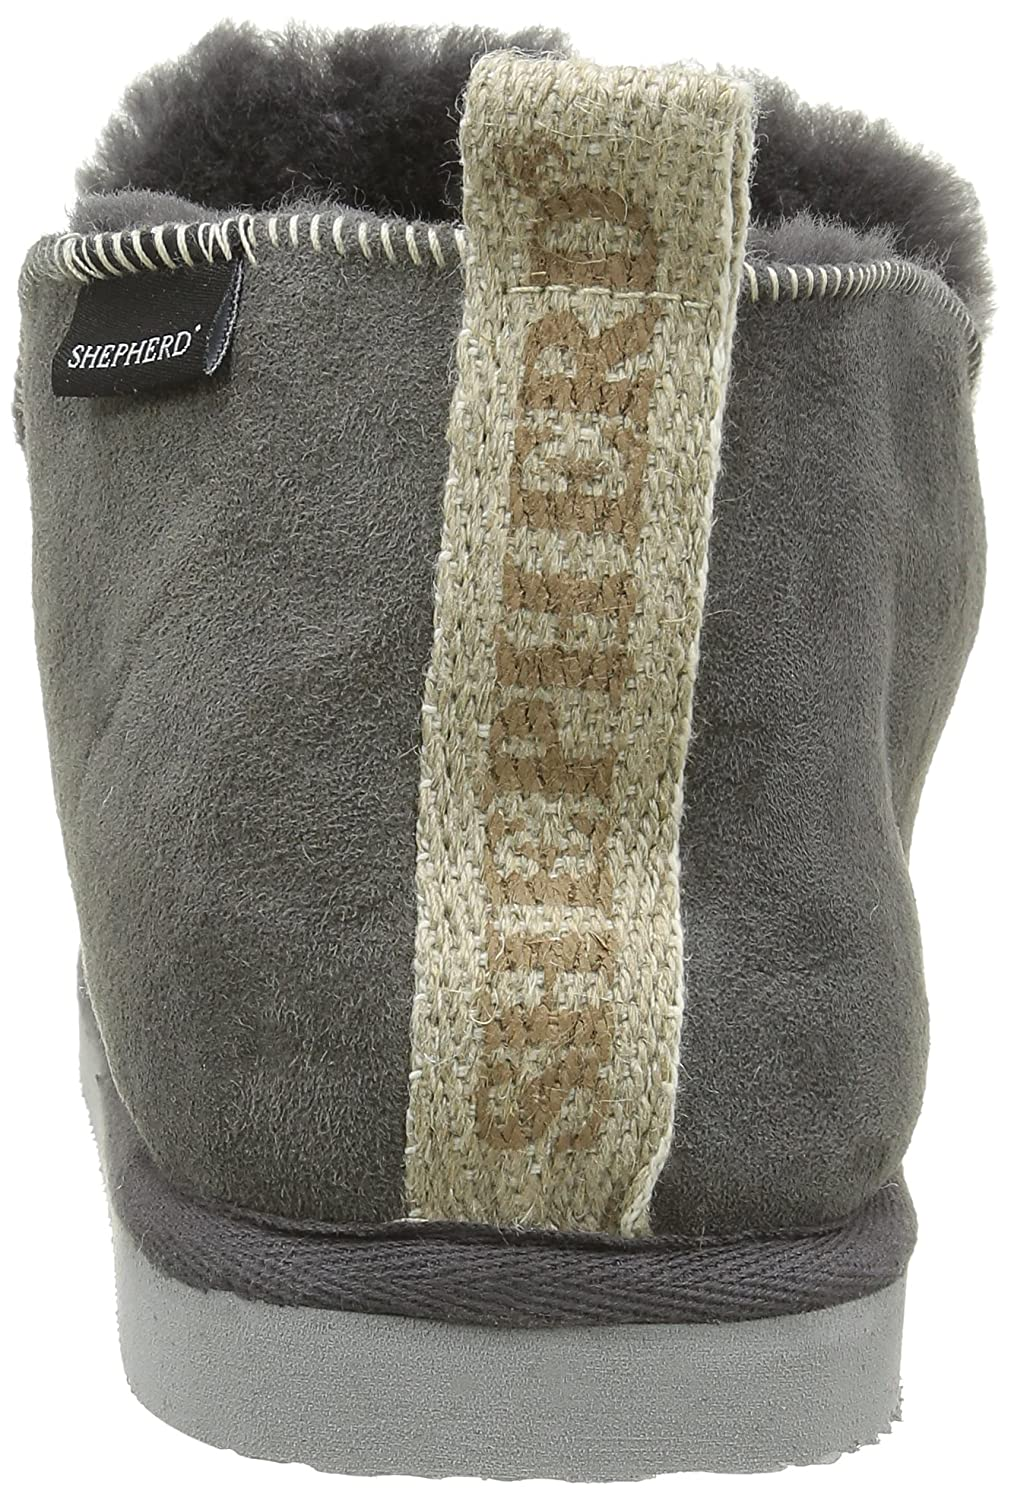 961ed37e62609 Shepherd Andy Slipper, Men's Warm Lined Slippers: Amazon.co.uk: Shoes & Bags